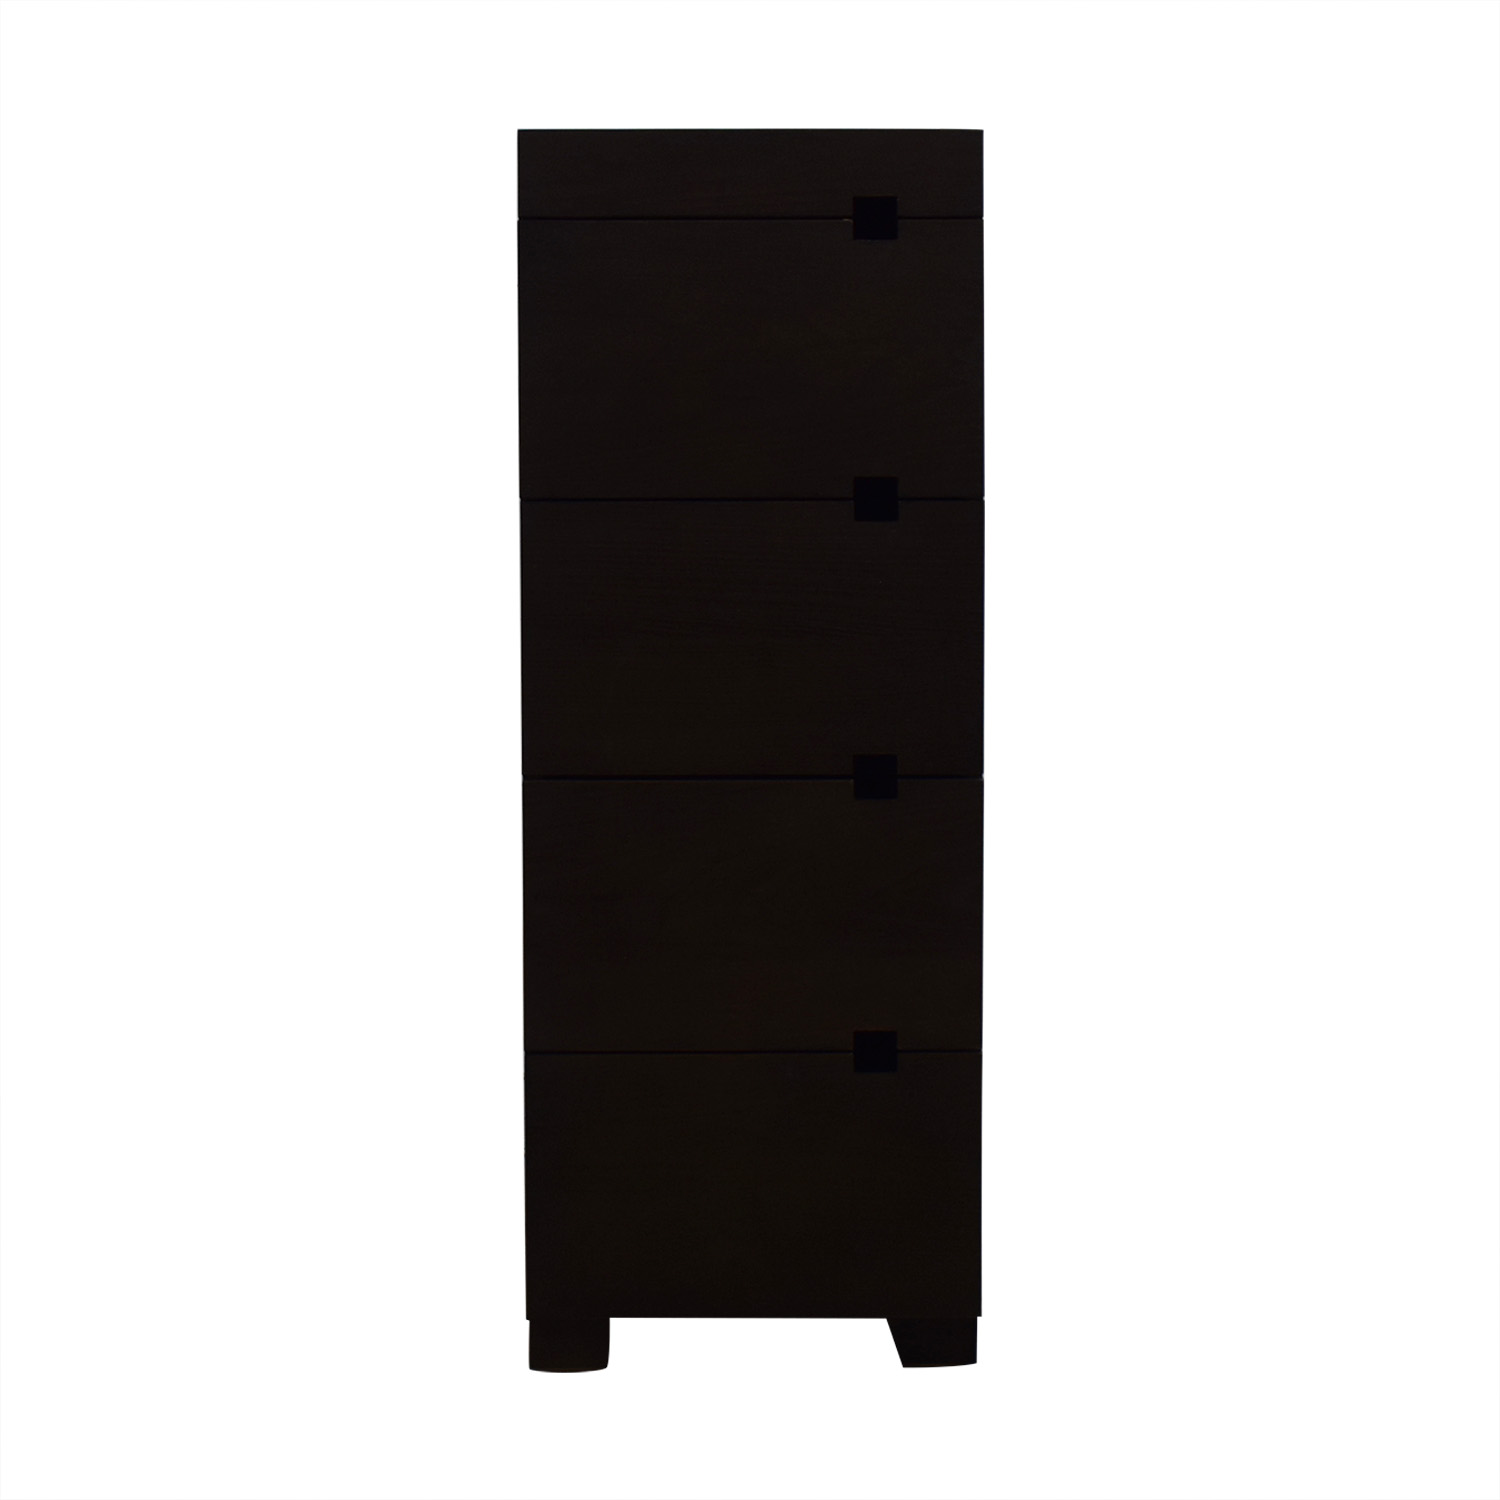 West Elm West Elm Four-Drawer Tower Dresser price